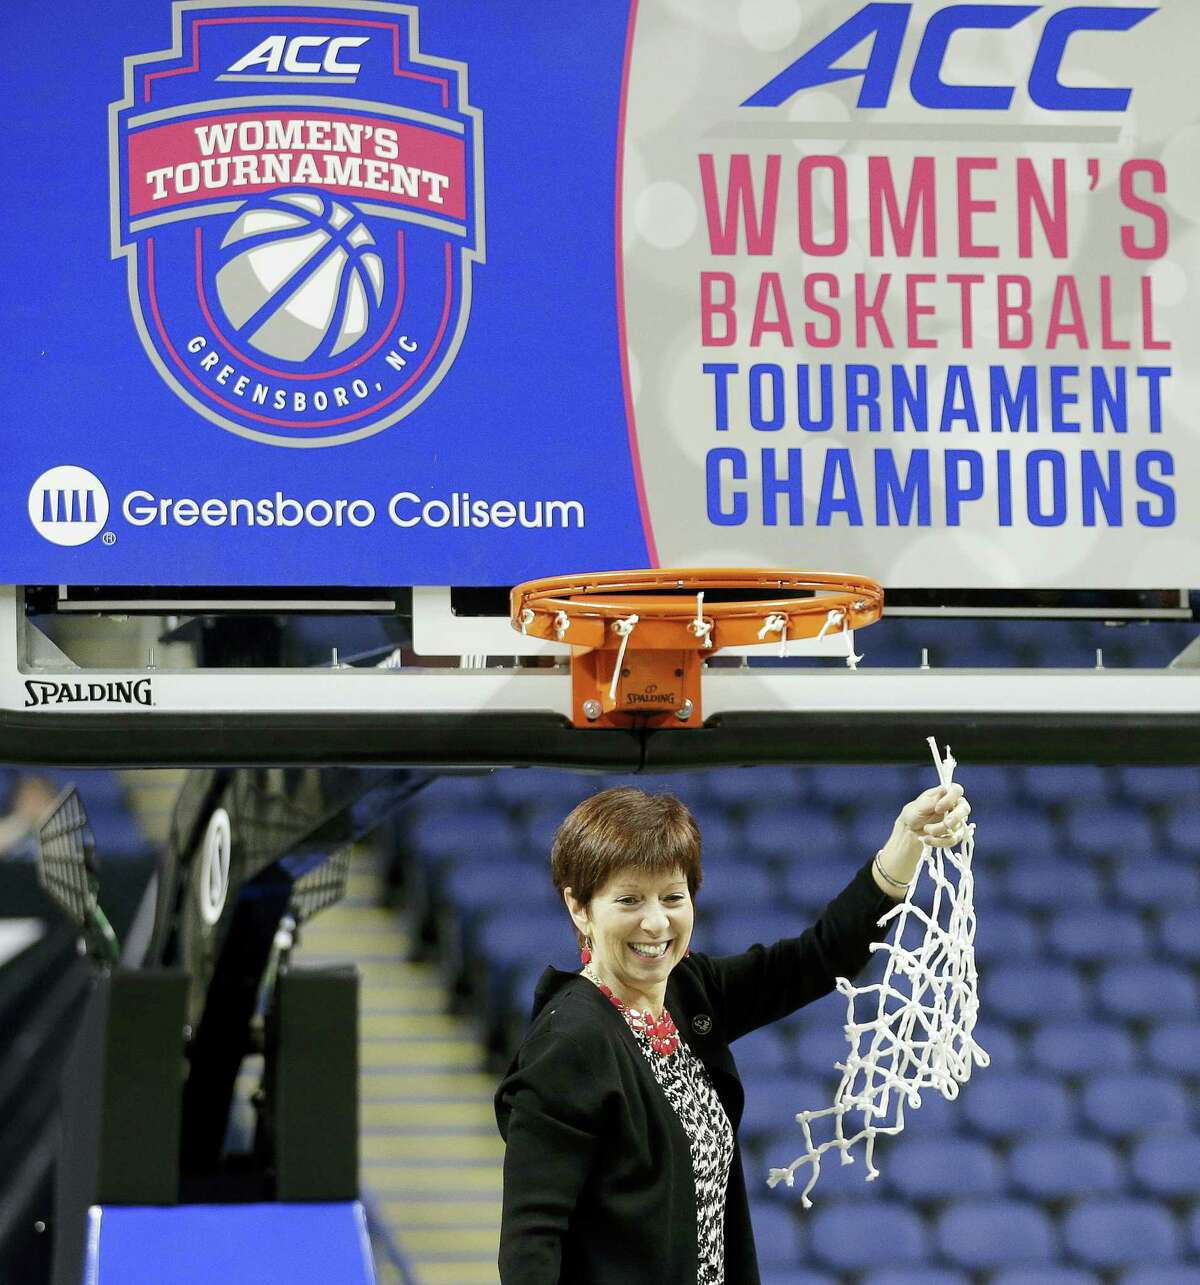 """In this March 8, 2015 photo, Notre Dame head coach Muffet McGraw celebrates after an NCAA college basketball game against Florida State in the championship of the Atlantic Coast Conference tournament in Greensboro, N.C. The NCAA says it will consider North Carolina as a host for championship events again after the state rolled back a law that limited protections for LGBT people. In a statement on April 4, 2017, the governing body said its Board of Governors had reviewed moves to repeal repealed the so-called """"bathroom bill"""" and replace it with a compromise law."""